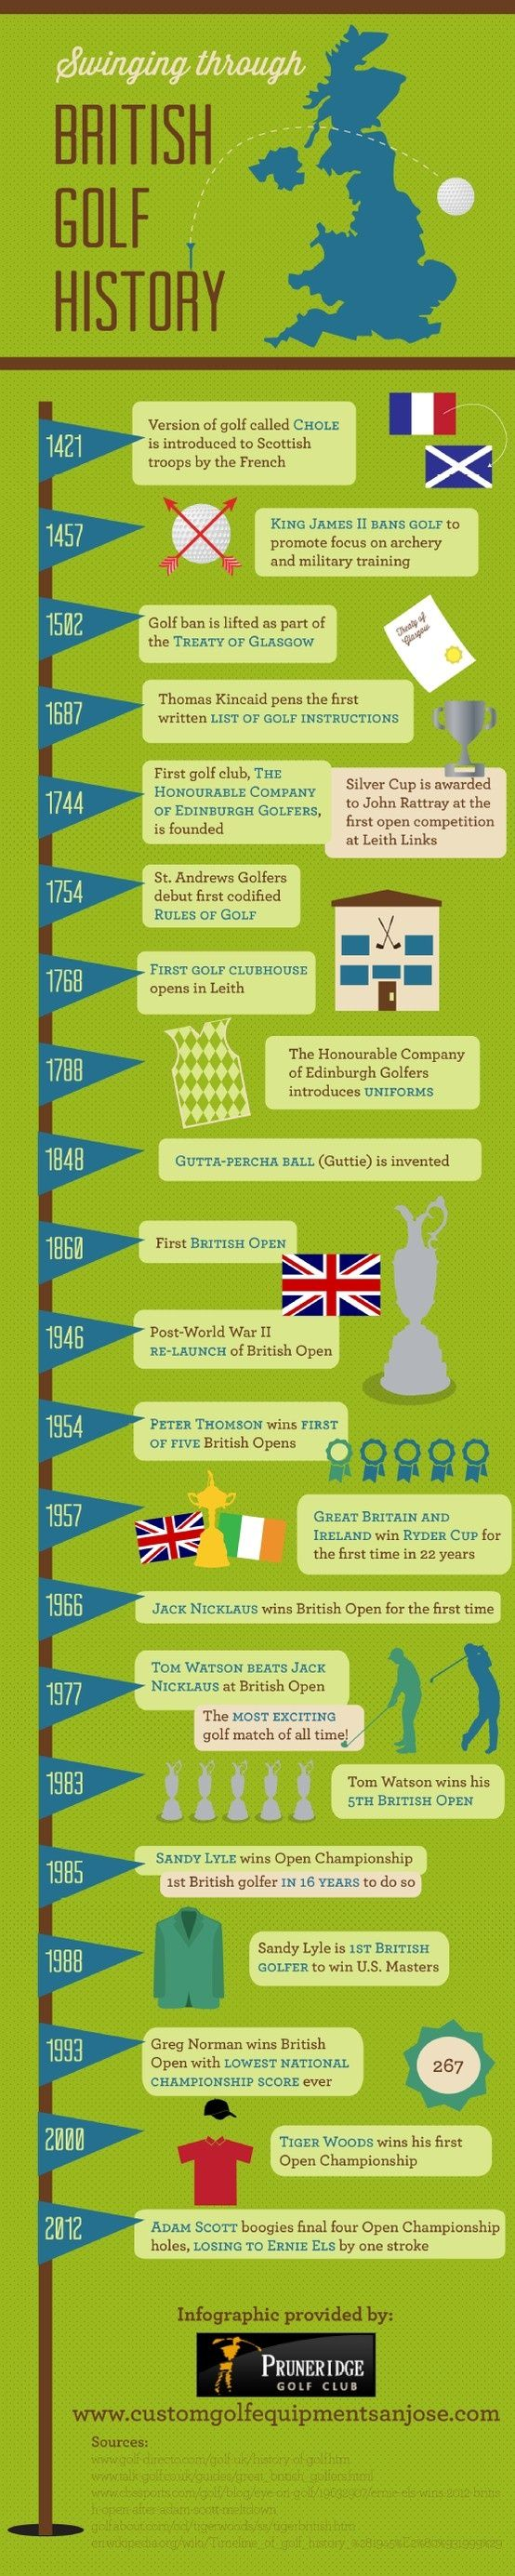 Pin by Be a Better Golfer on Golf Infographics Pinterest